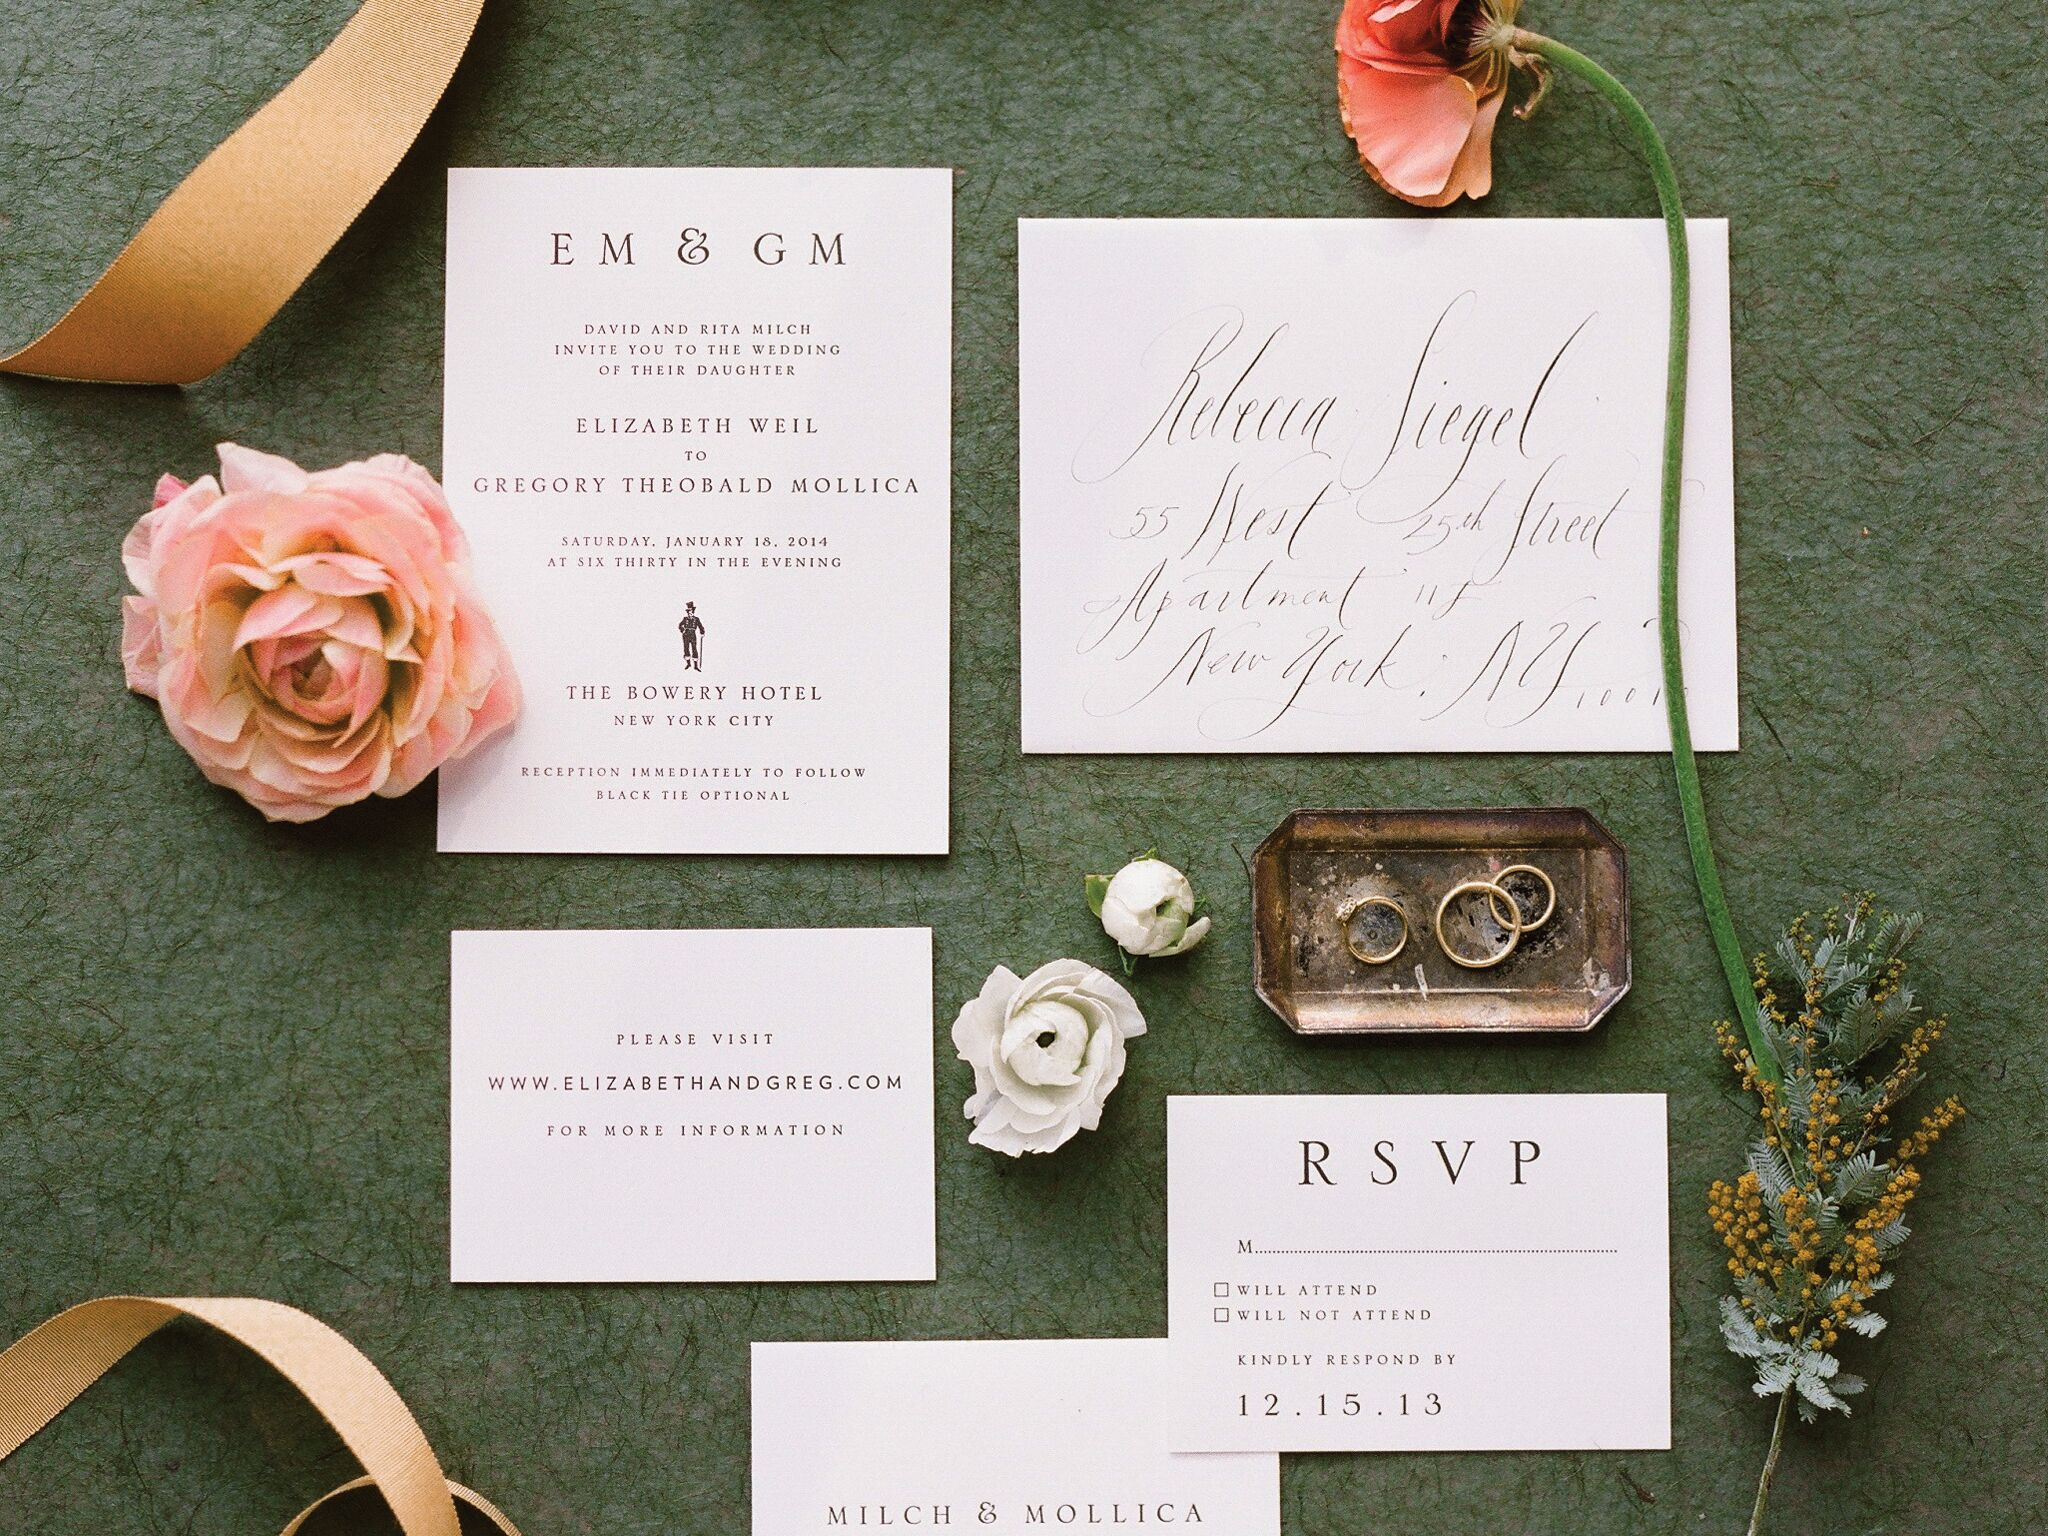 Wording Of Wedding Invitations: Top 10 Wedding Invitation Etiquette Questions